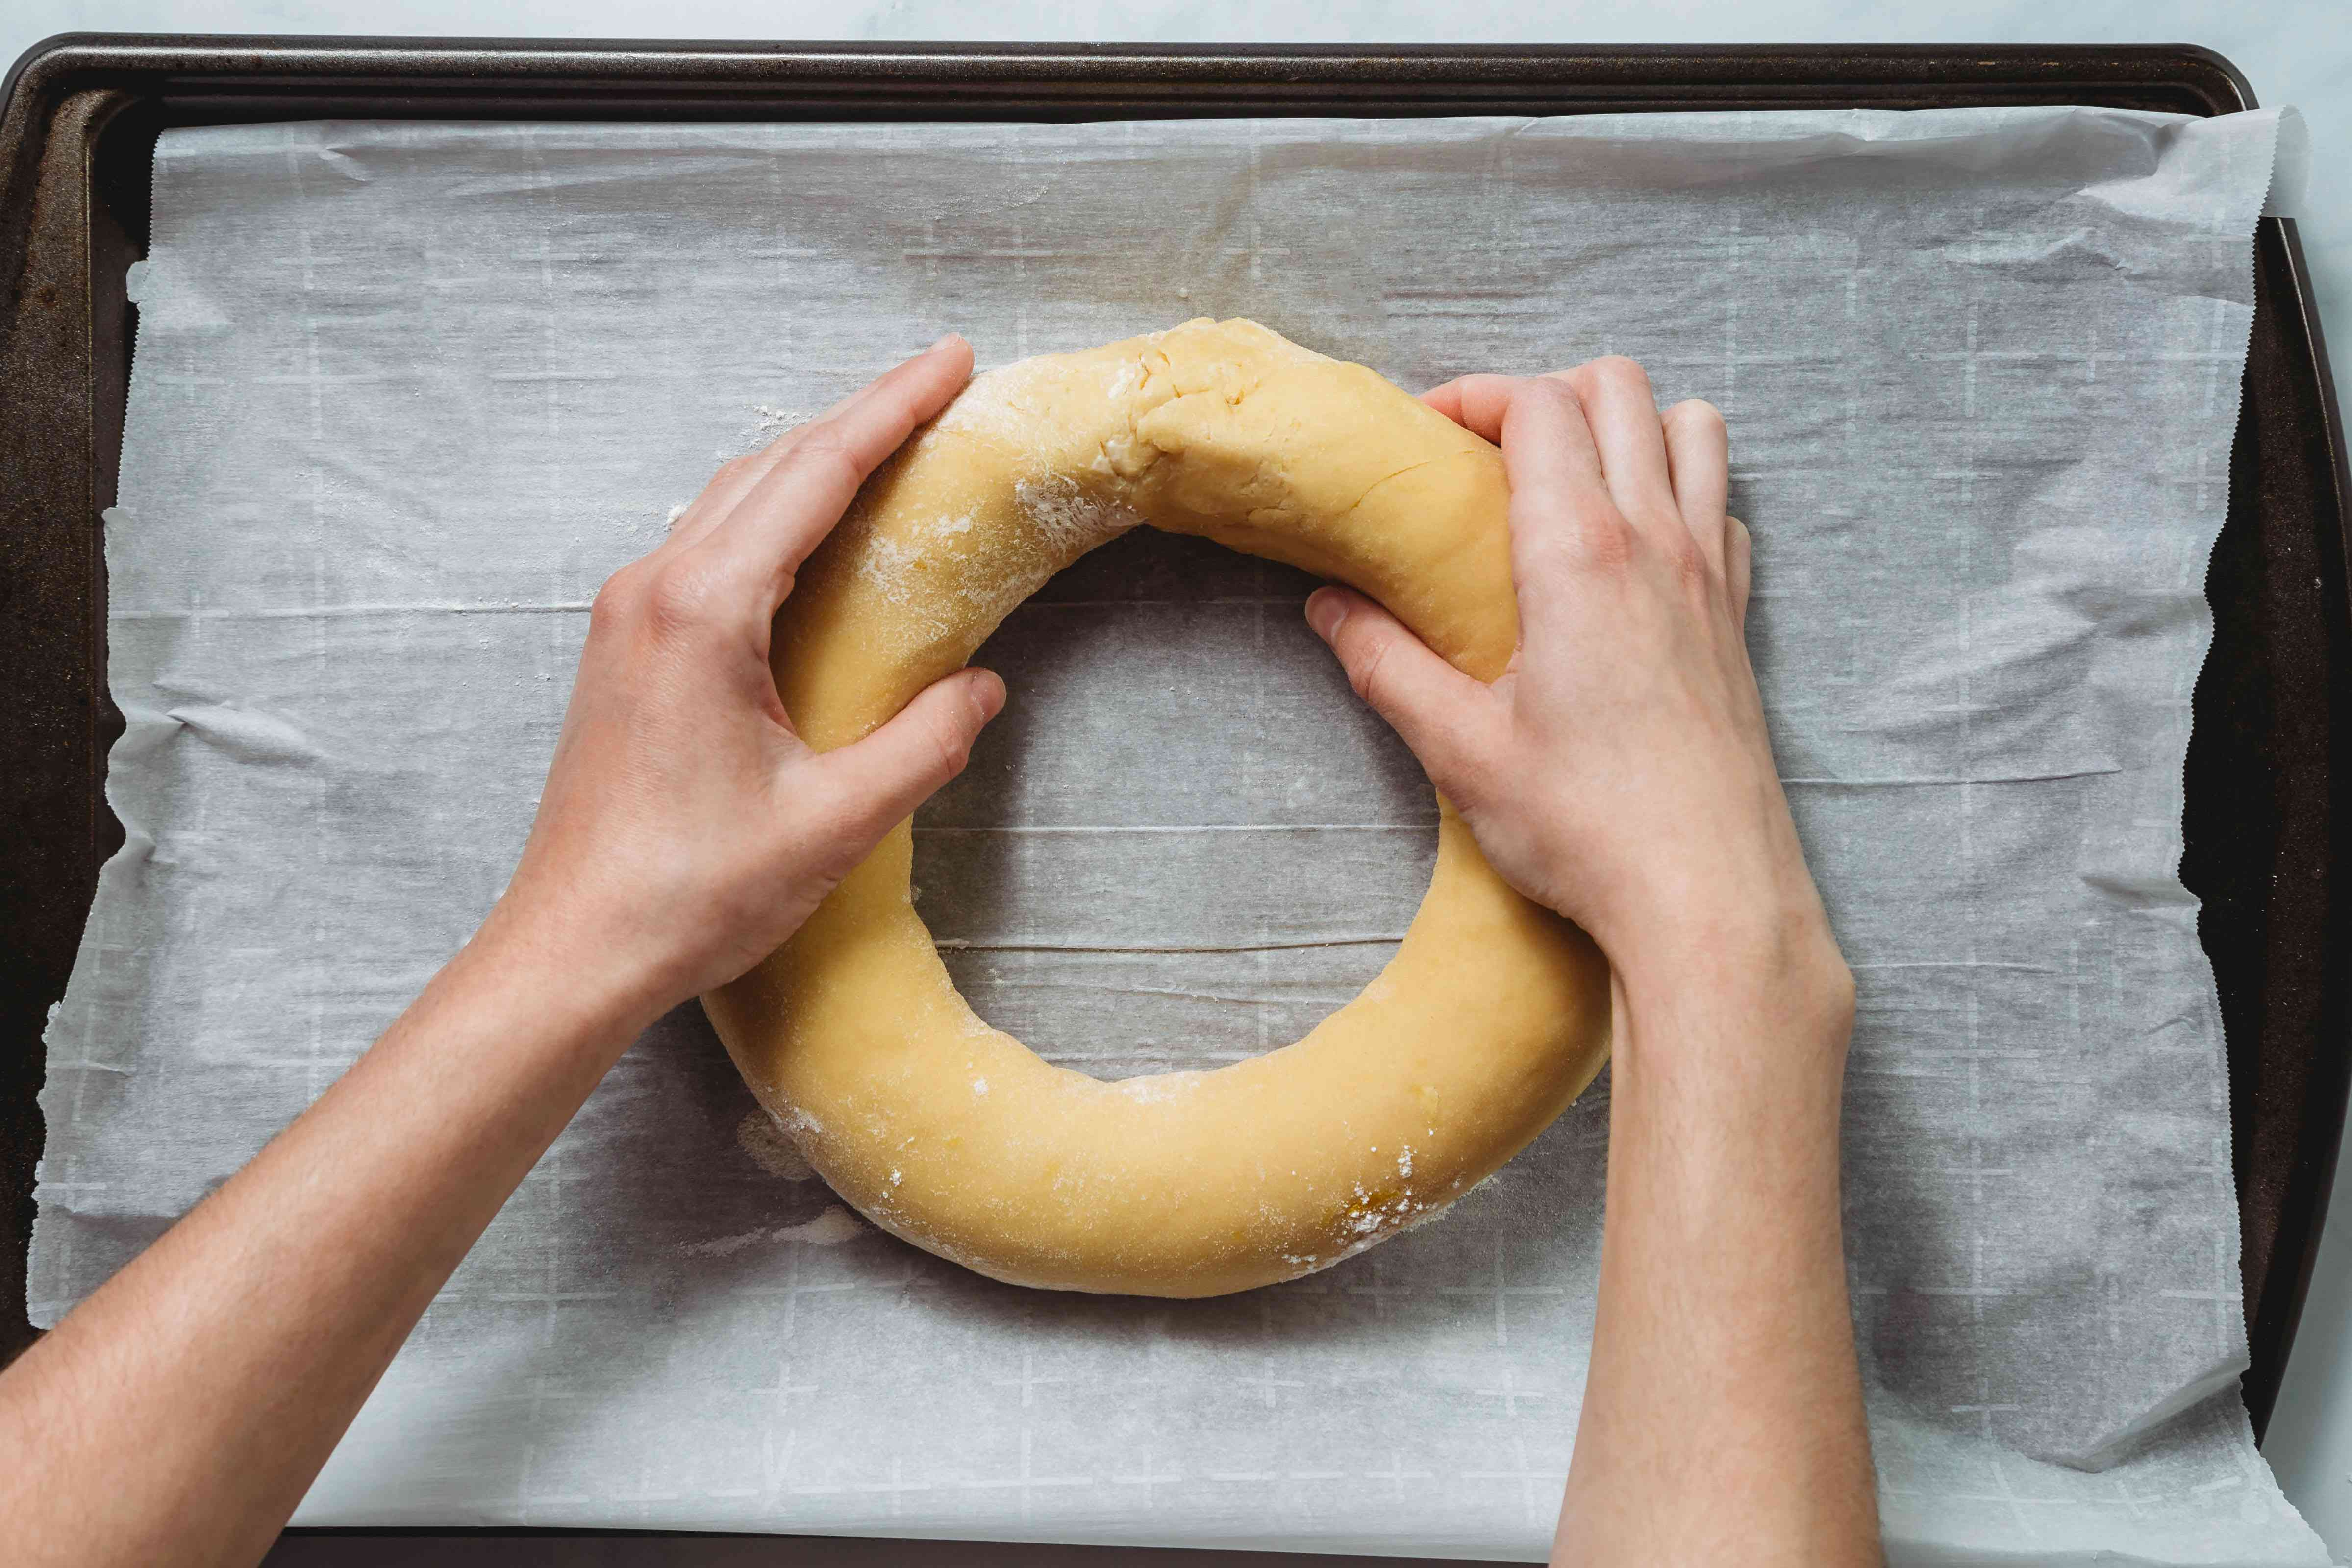 dough being shaped into ring on baking sheet